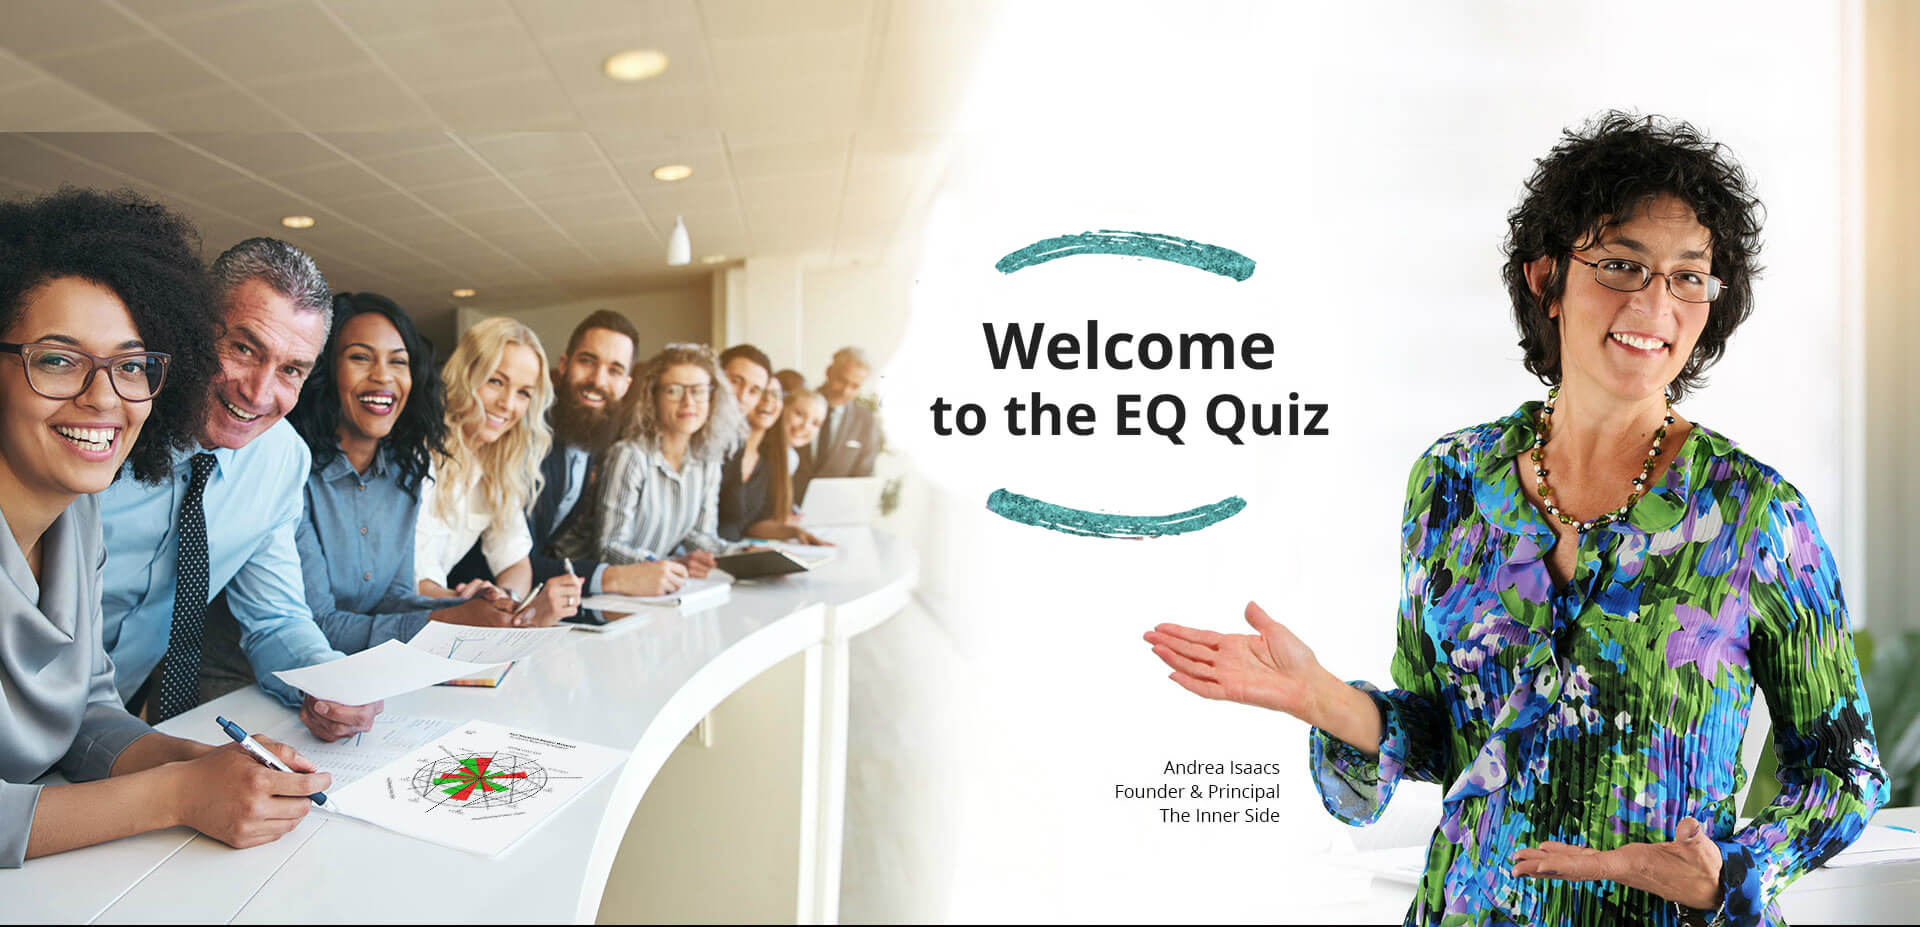 EQ Quiz Based on Enneagram - Enneagram quiz